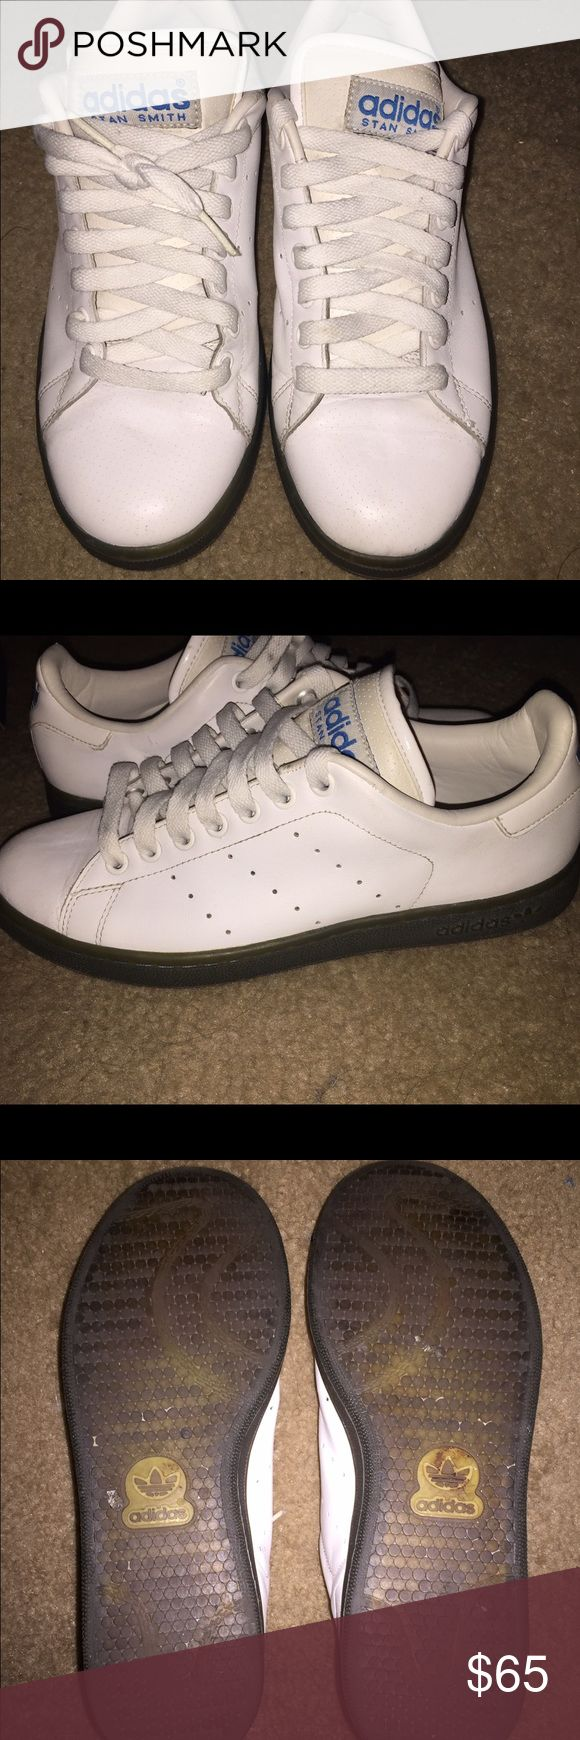 ADIDAS White Stan Smith Grey bottom  Size 8.5 Men Great Condition Bubble Gum Sole in Grey with Blue stitching Rare Sneaker Size Men 8.5 and Women 10.5 adidas Shoes Athletic Shoes